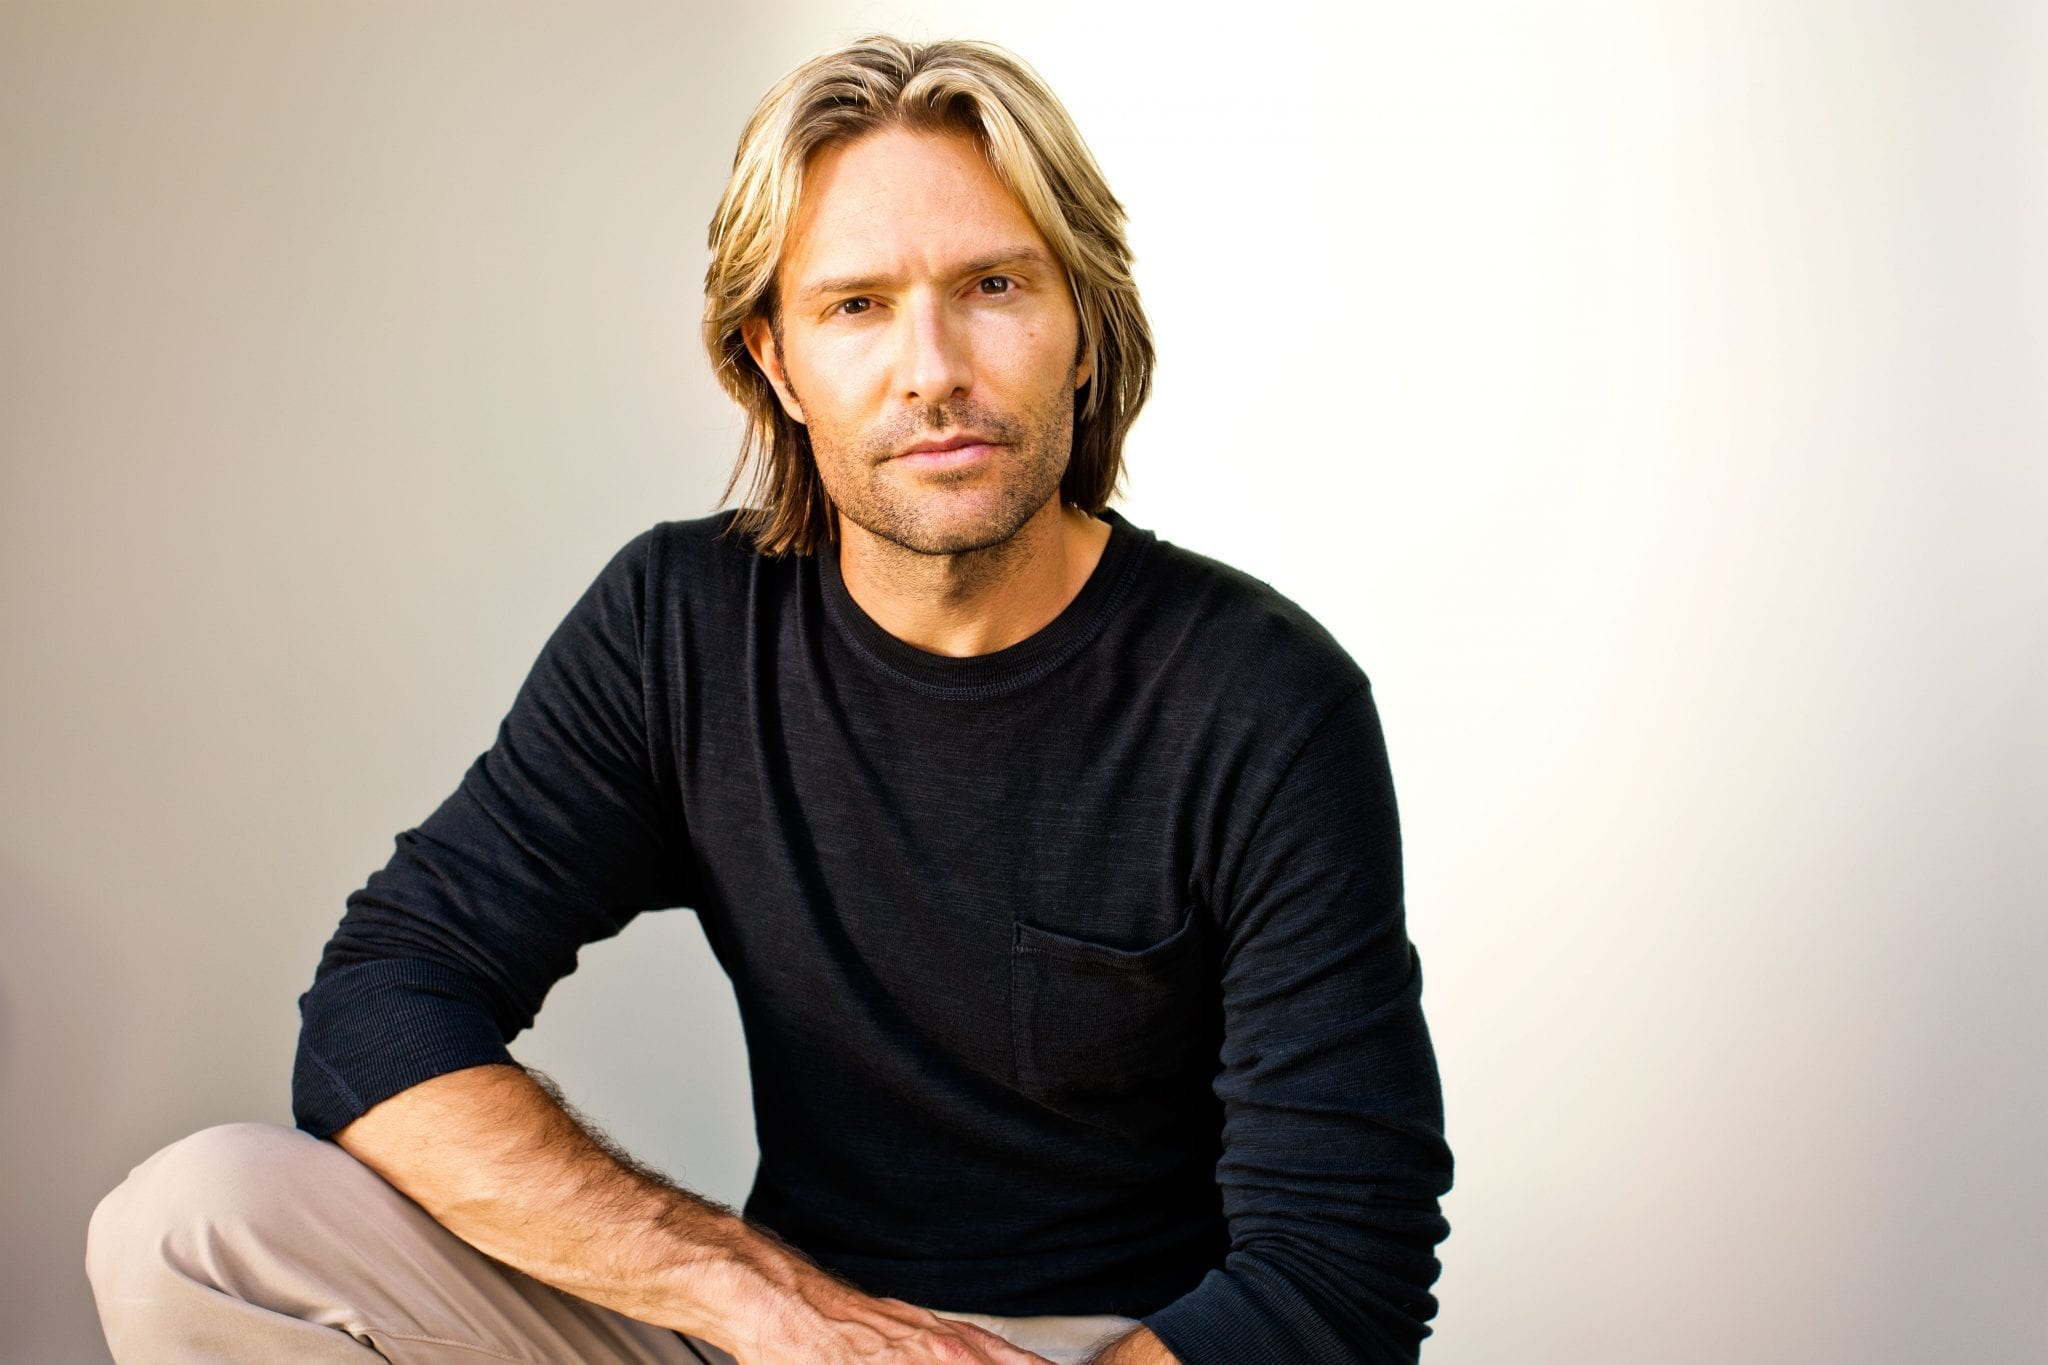 eric-whitacre-credit-marc-royce-01